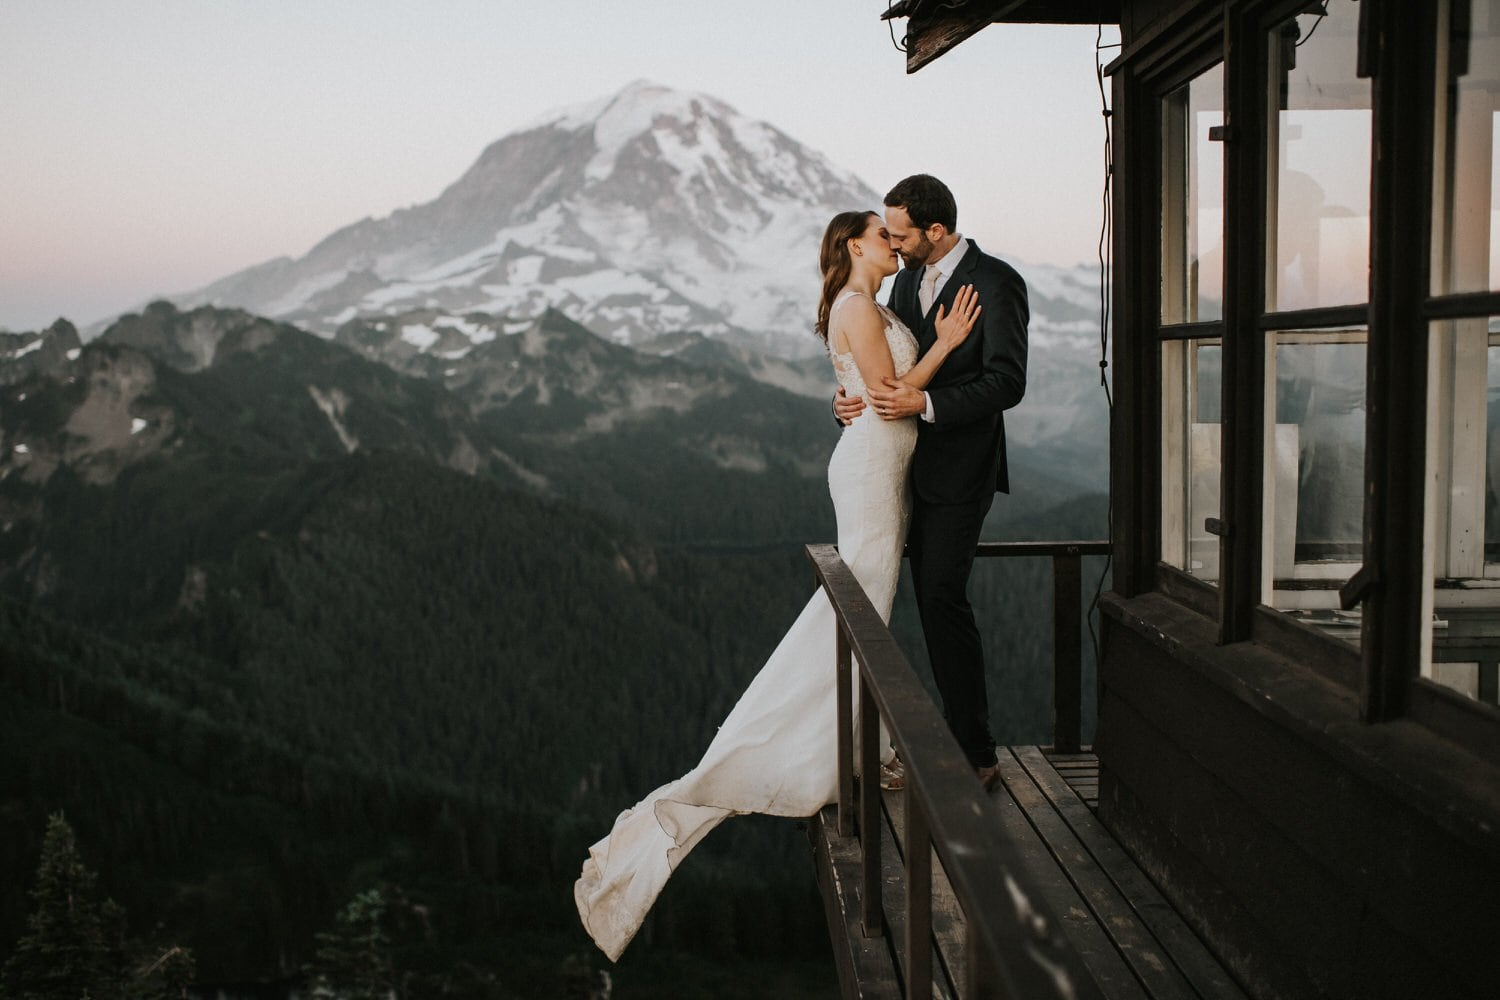 washington elopement packages best places to elope at mount rainier